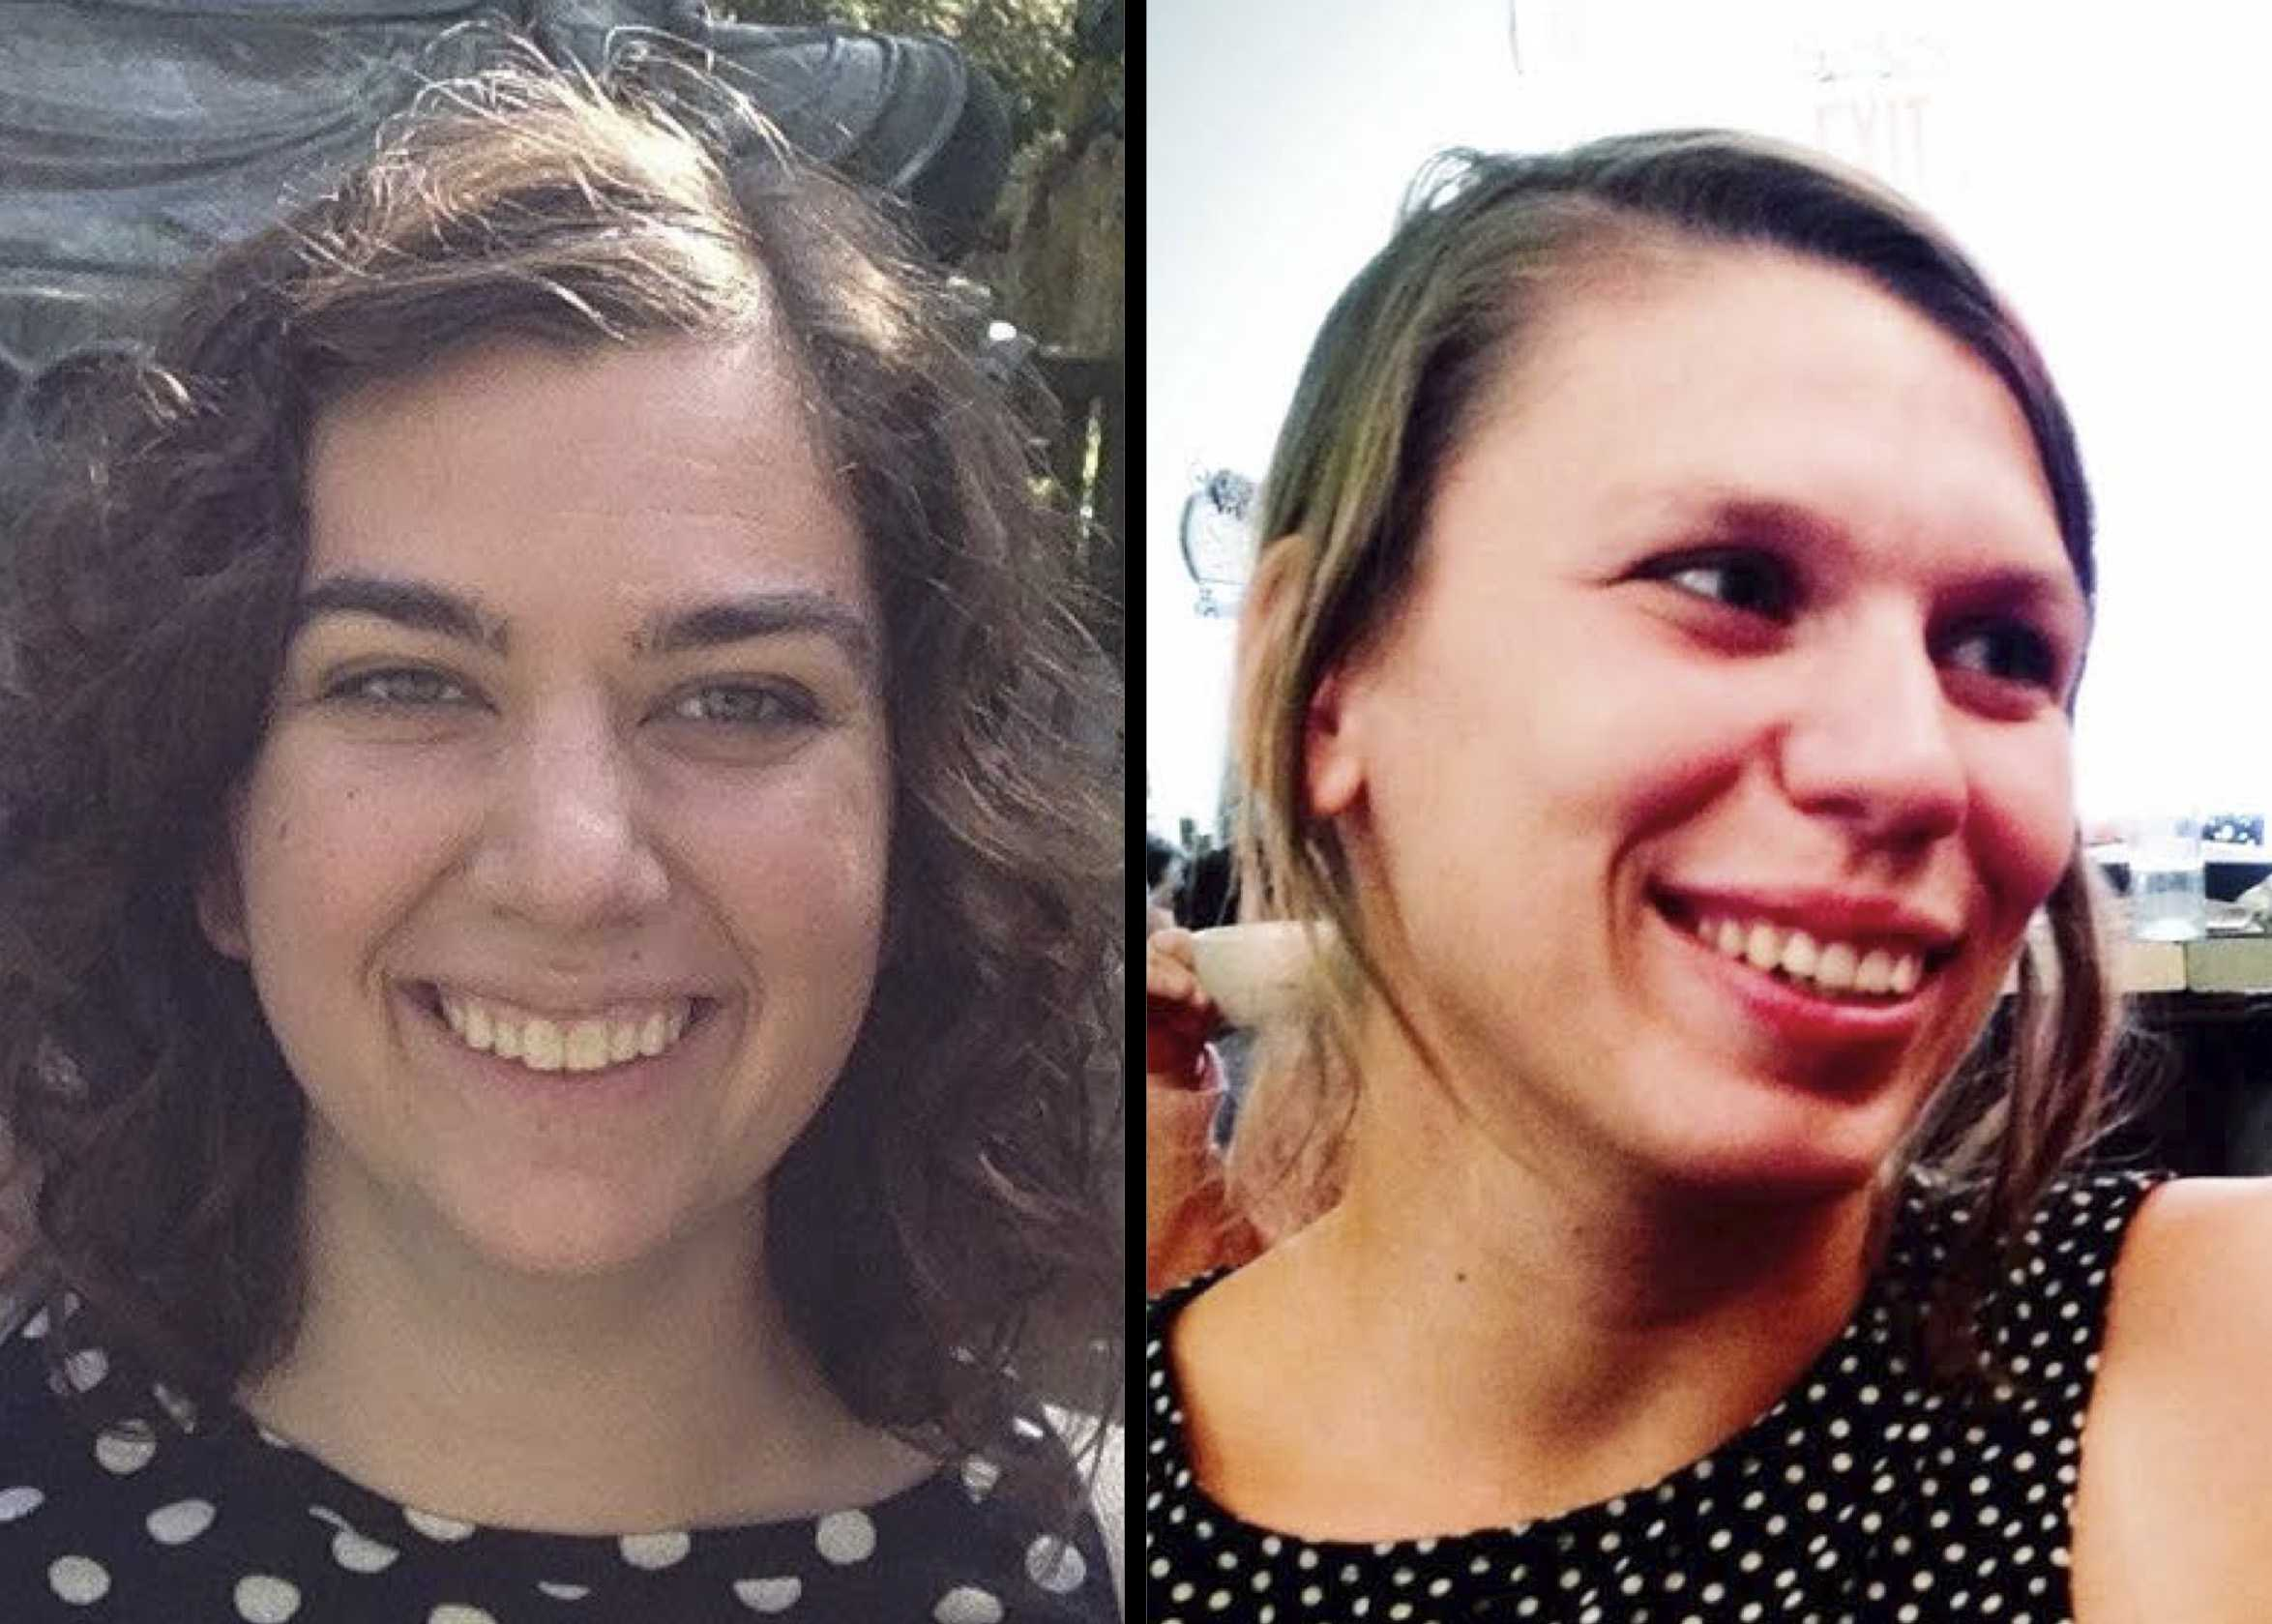 Sophie Smith (left) and Alicia Dinsmore, Humanitarian Aids for Migrants